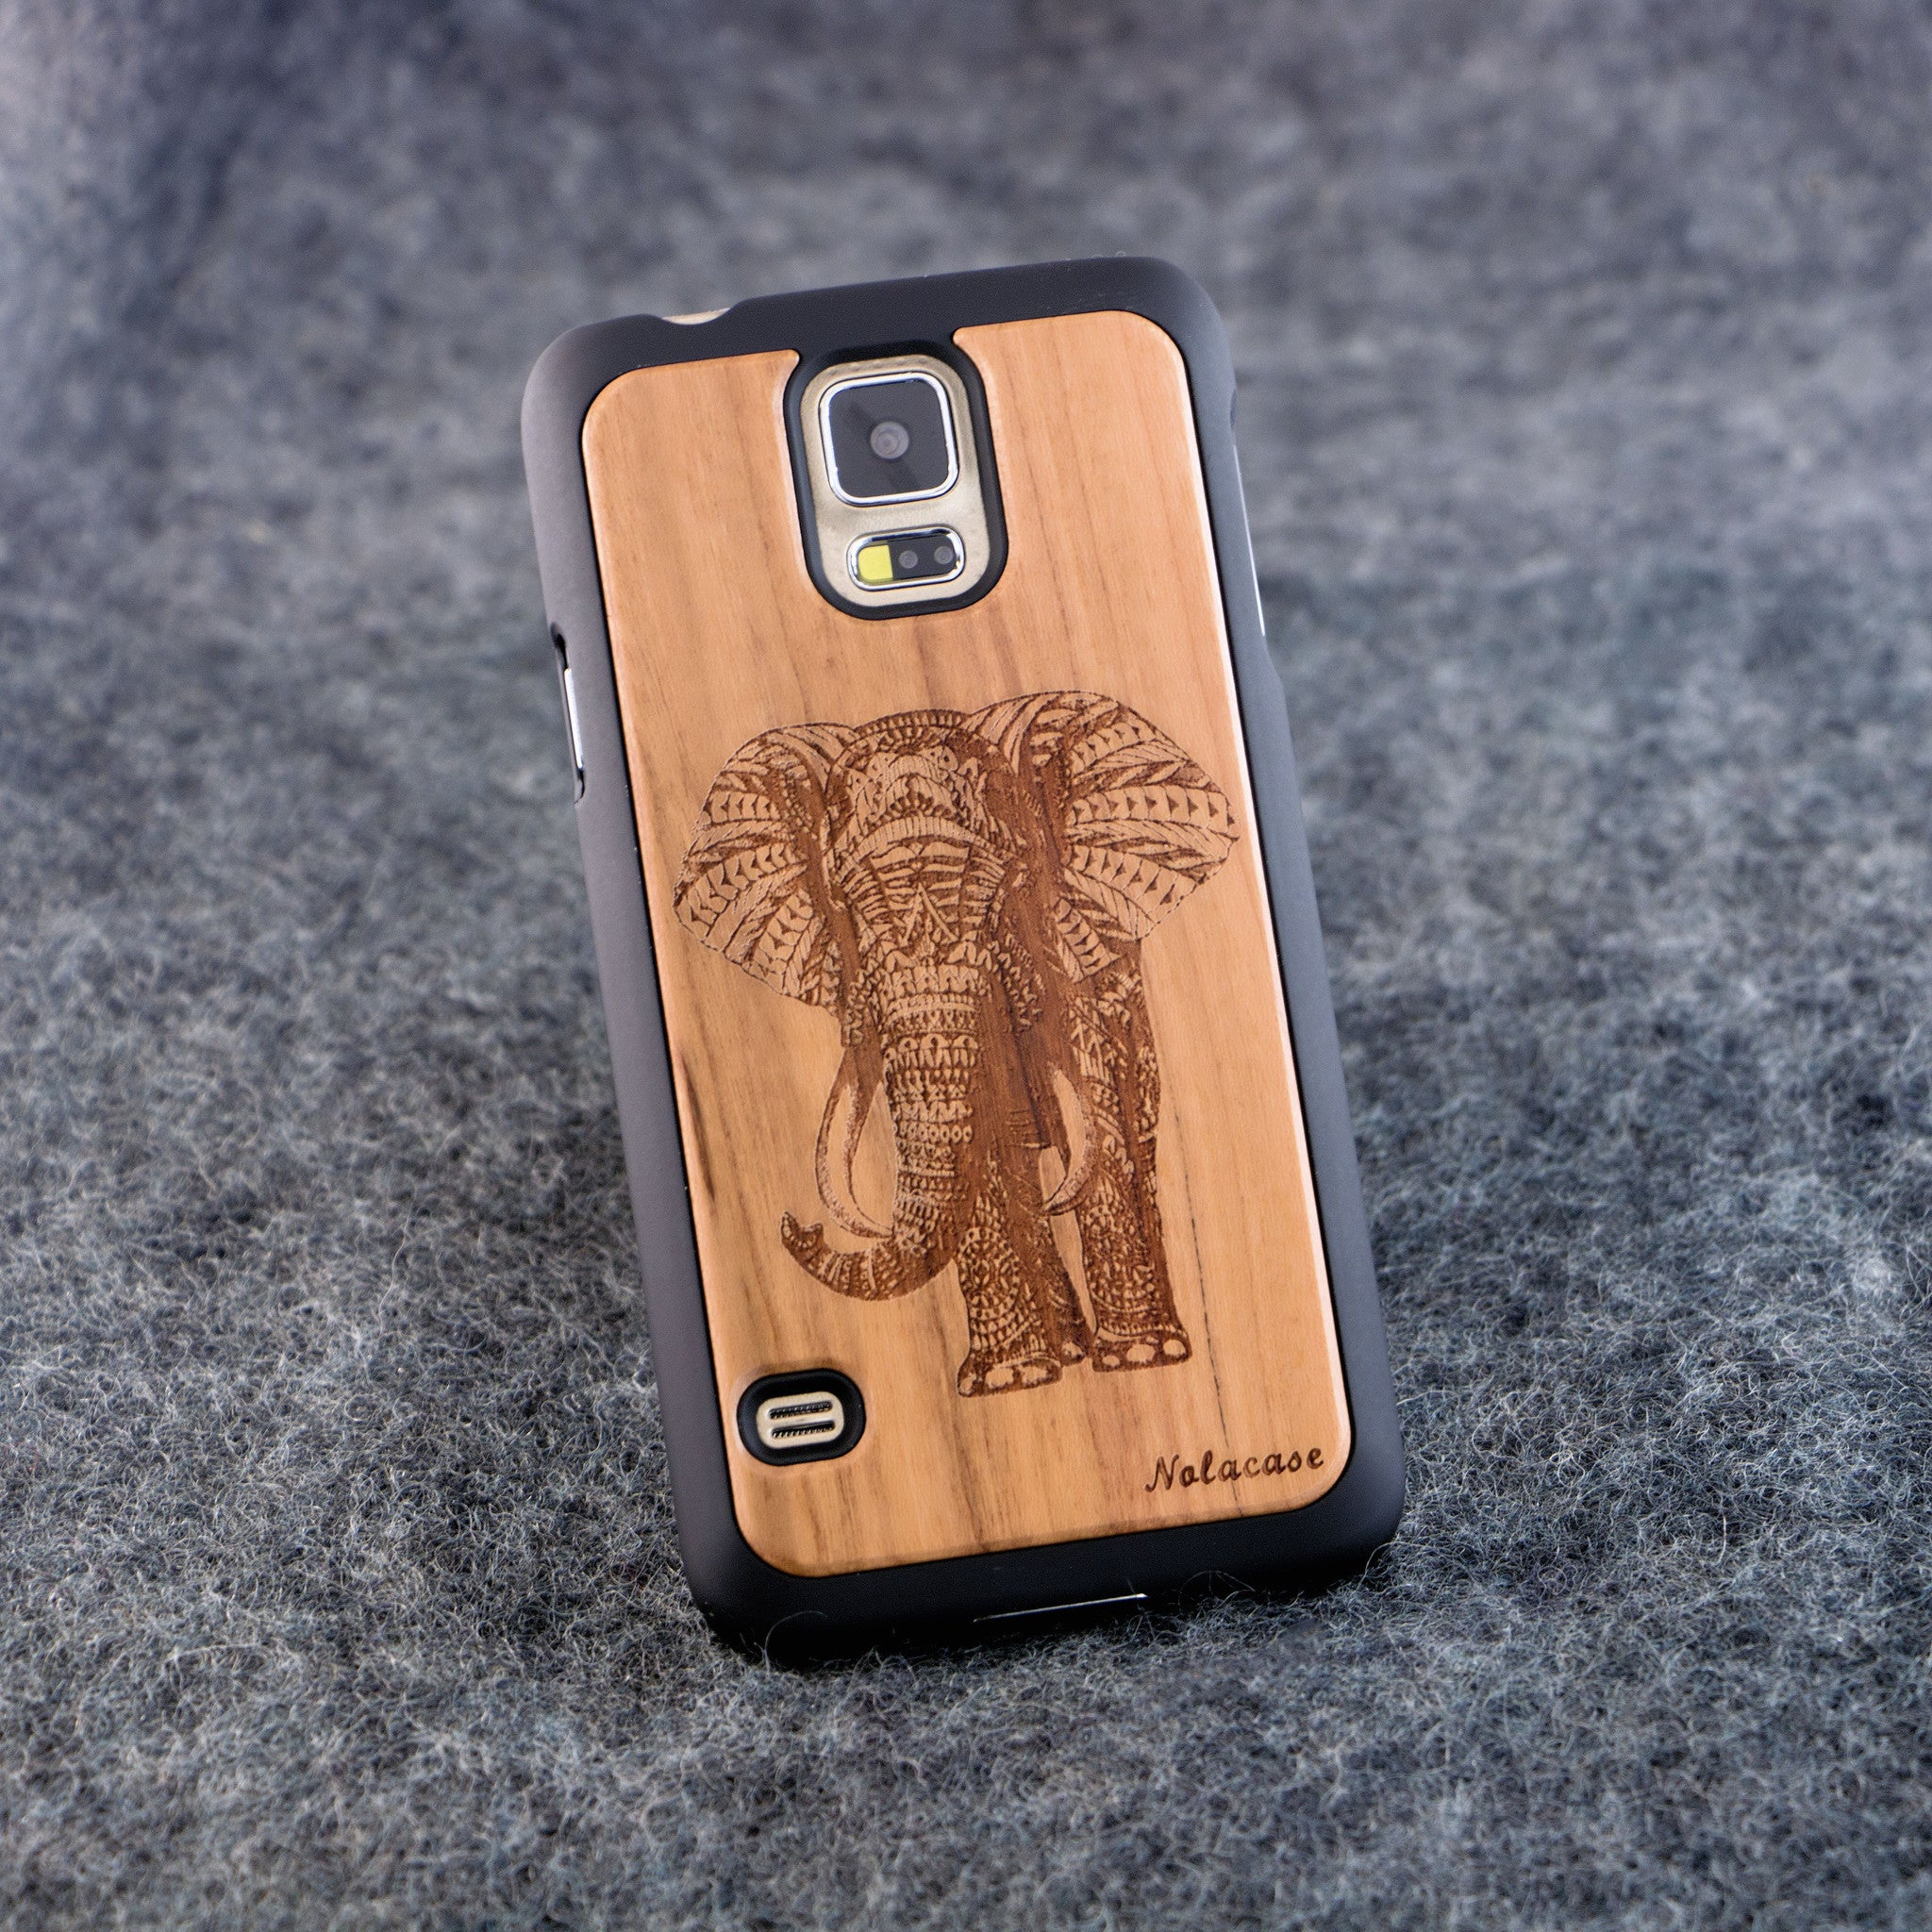 Samsung S5 Elephant Slim Wood Case - NOLACASE